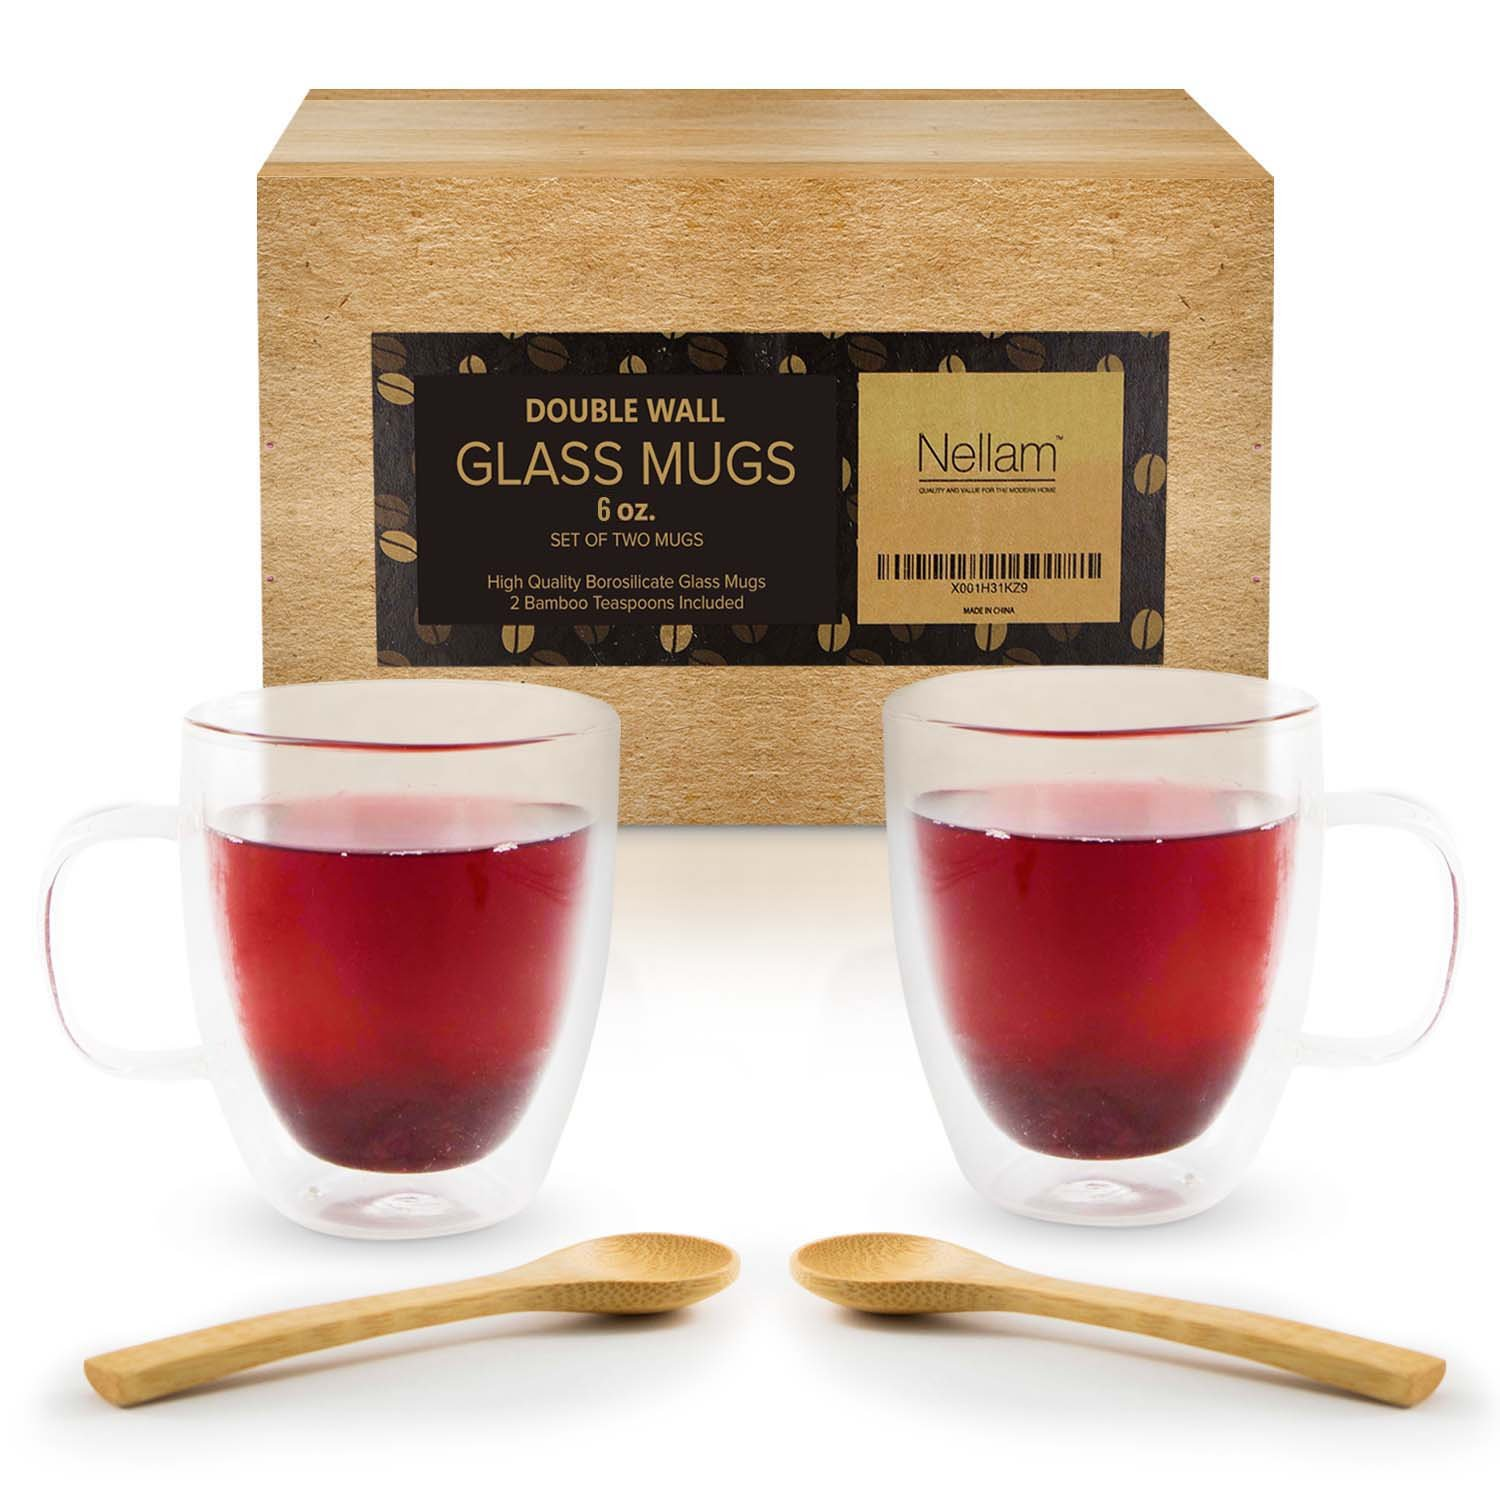 Insulated Glass Coffee Mugs - 2 Cups, 6oz Size - Clear Thermal Double Wall Tumbler Set with Handles and Bamboo Teaspoons - For Espresso, Tea, Latte, Cappuccino - BPA Free, Dishwasher & Microwave Safe